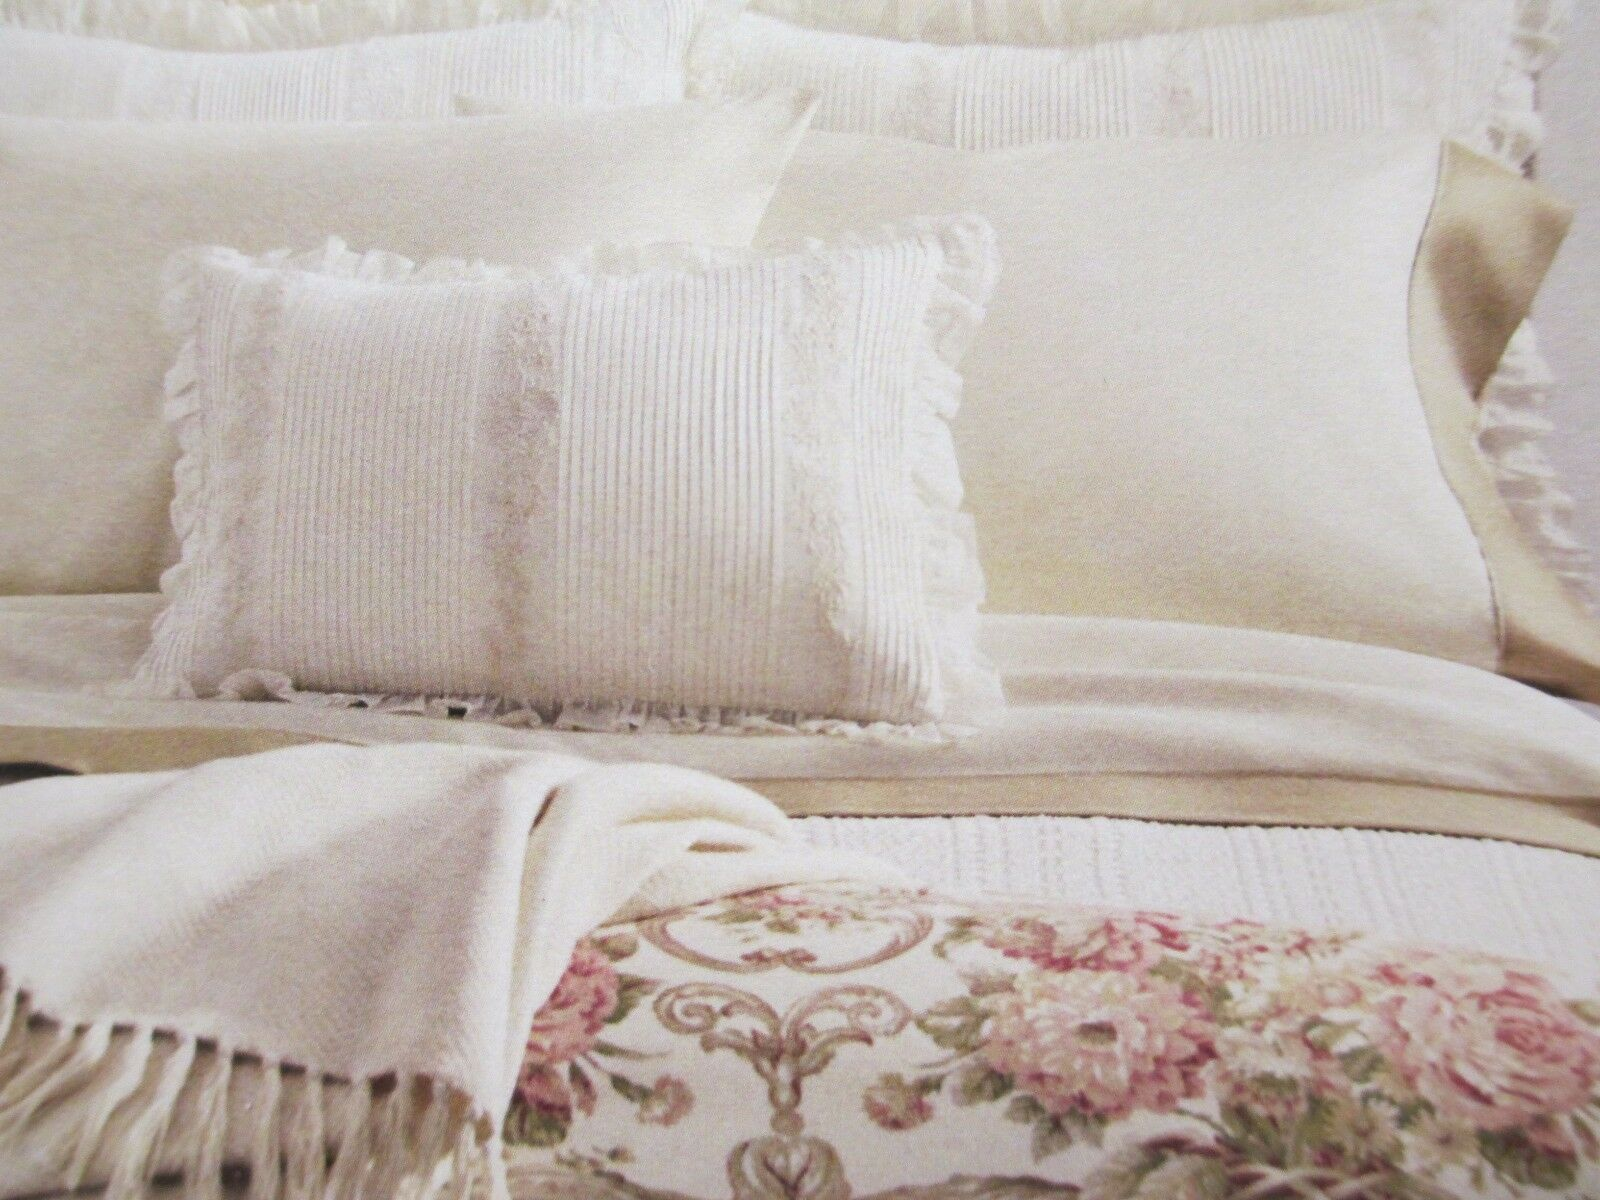 Ralph Lauren SABRINA Guinevere Victorian Feather Cream Embroiderosso Ruffle Pillow